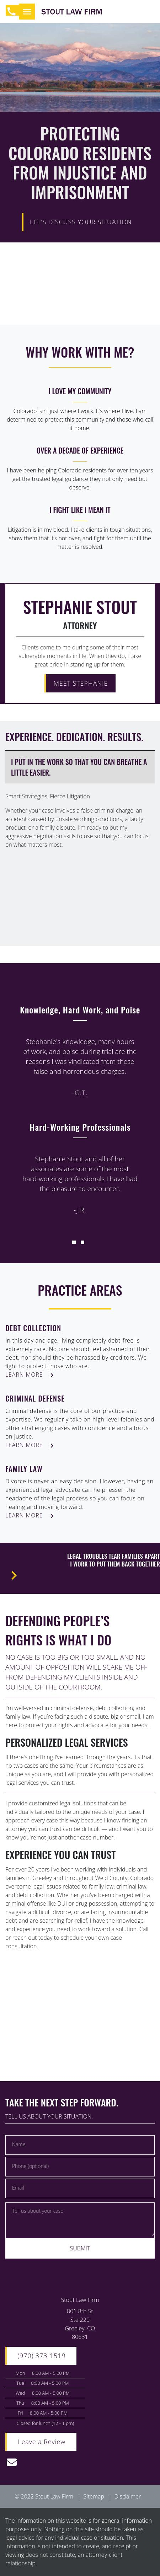 Stout Law Firm, LLC - Greeley CO Lawyers